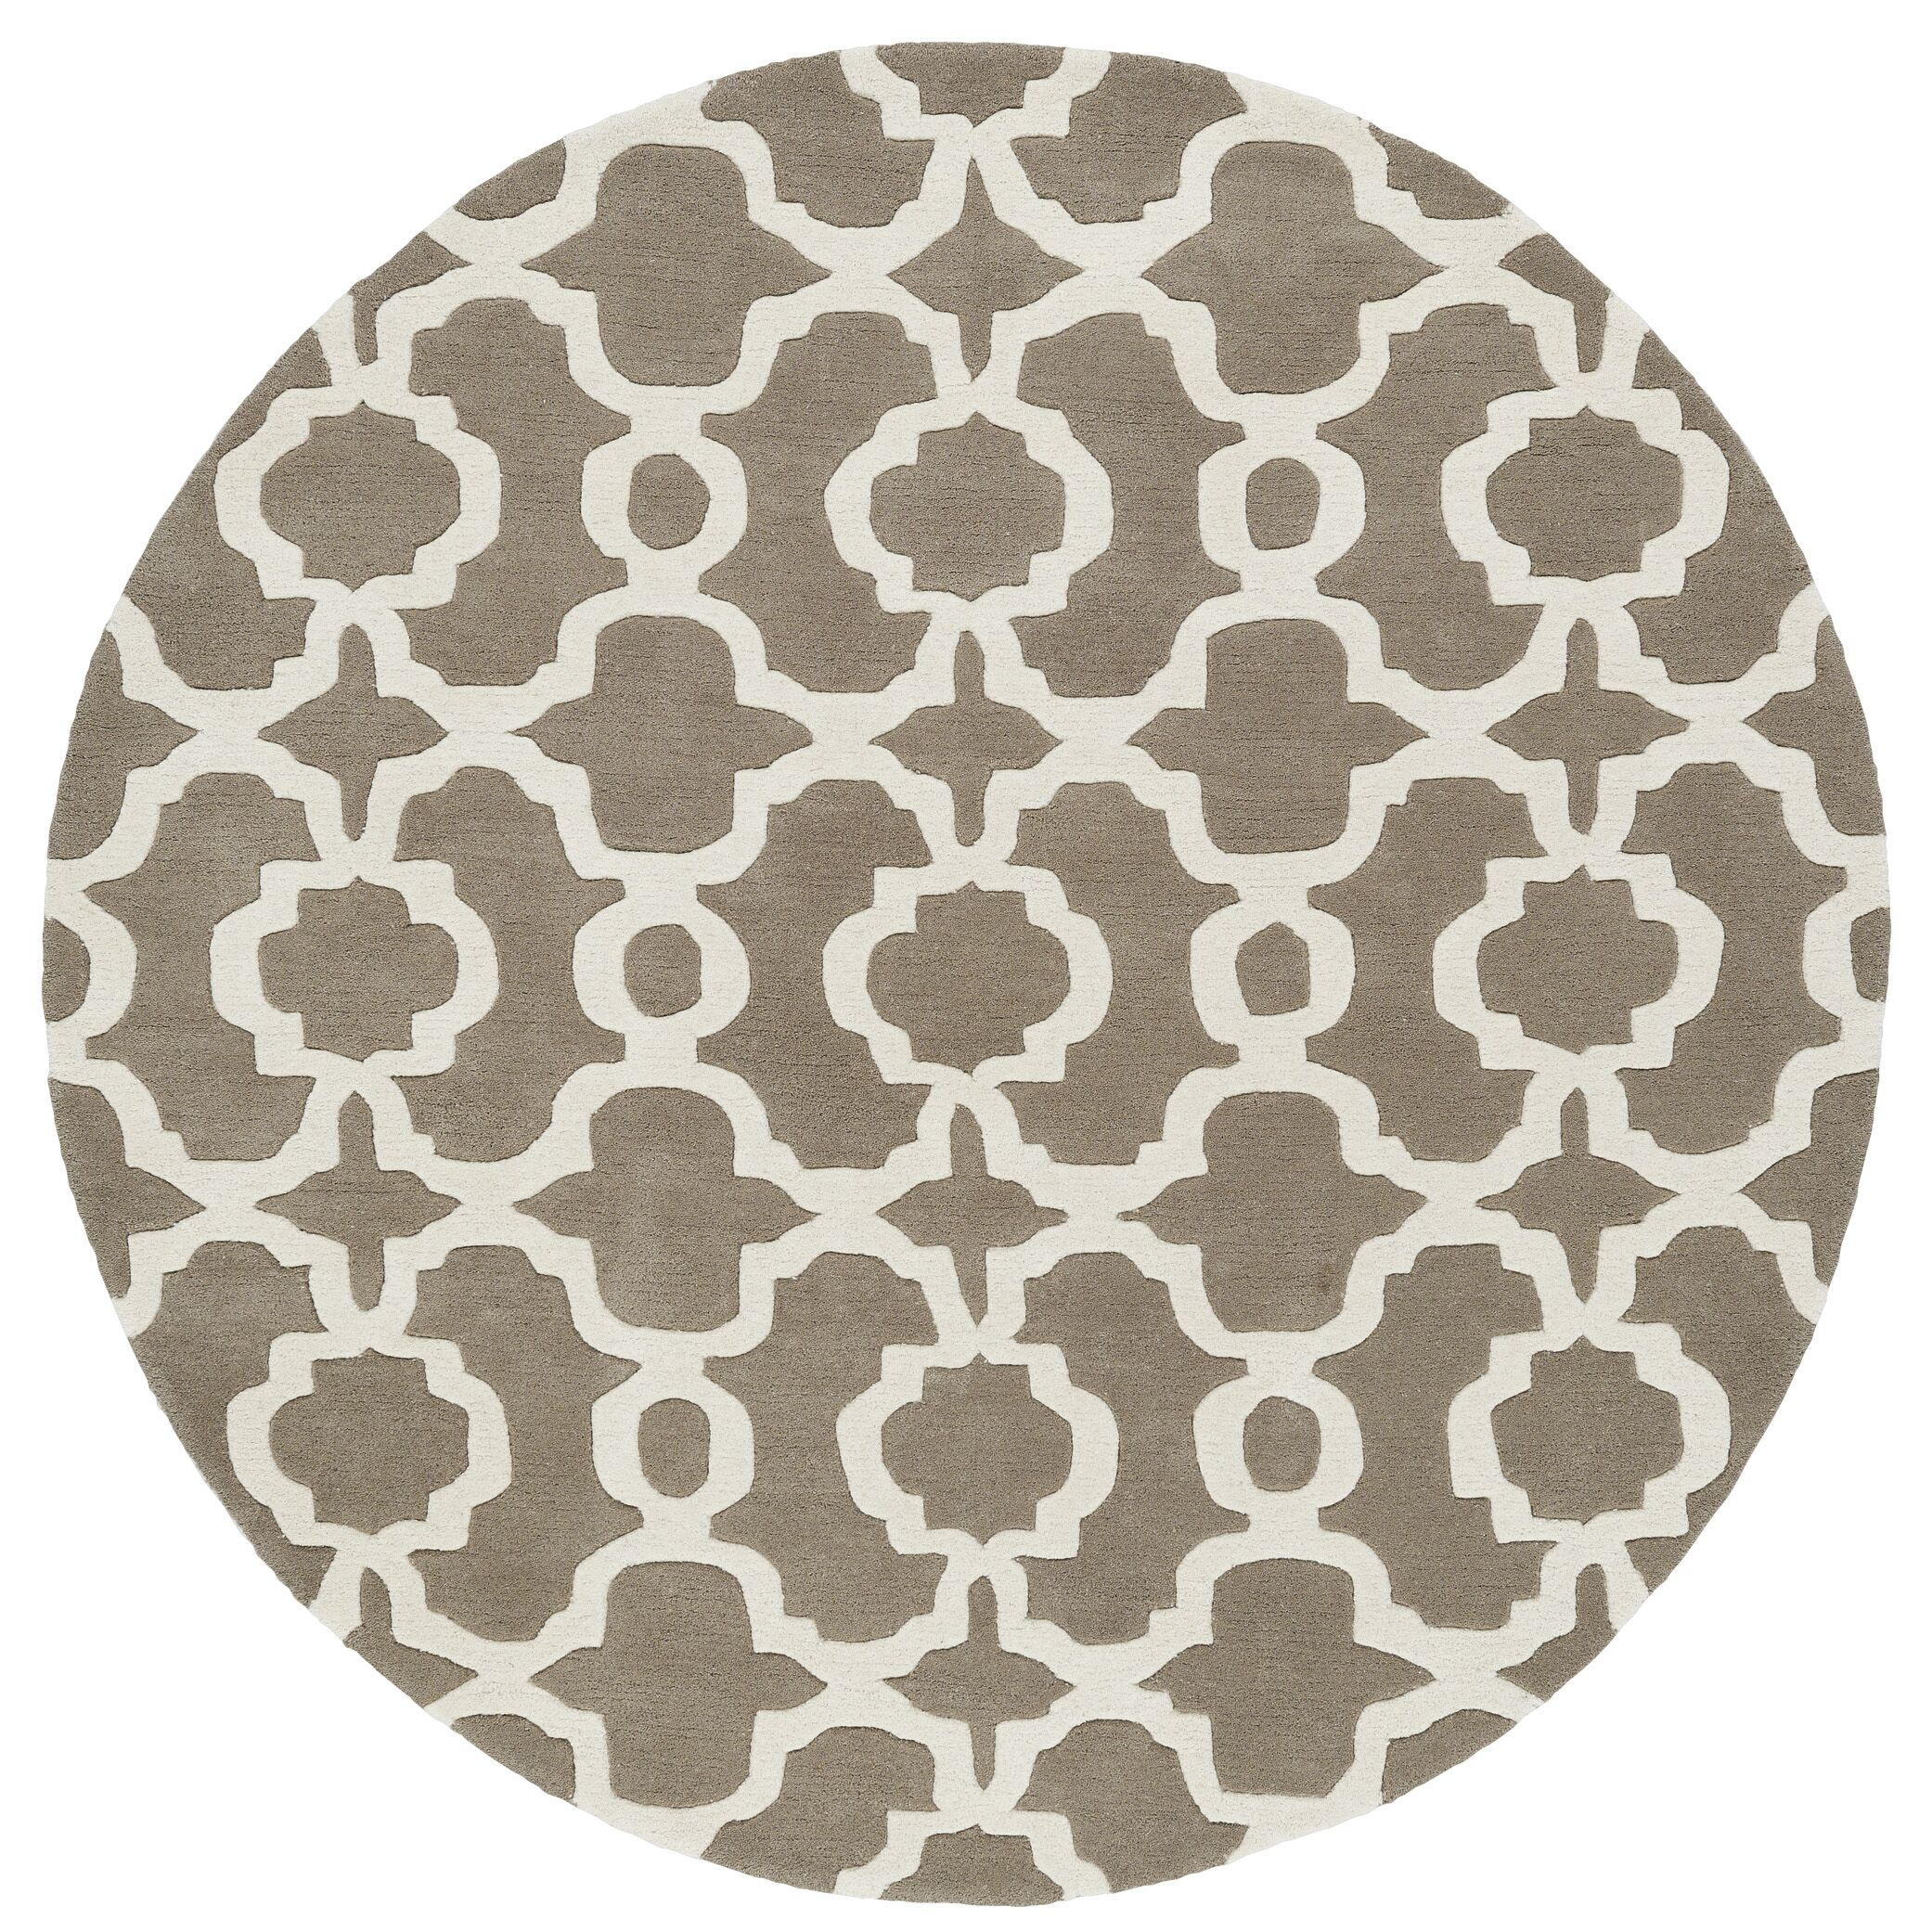 Molly Hand-Tufted Light Brown / Ivory Area Rug Rug Size: Round 5'9